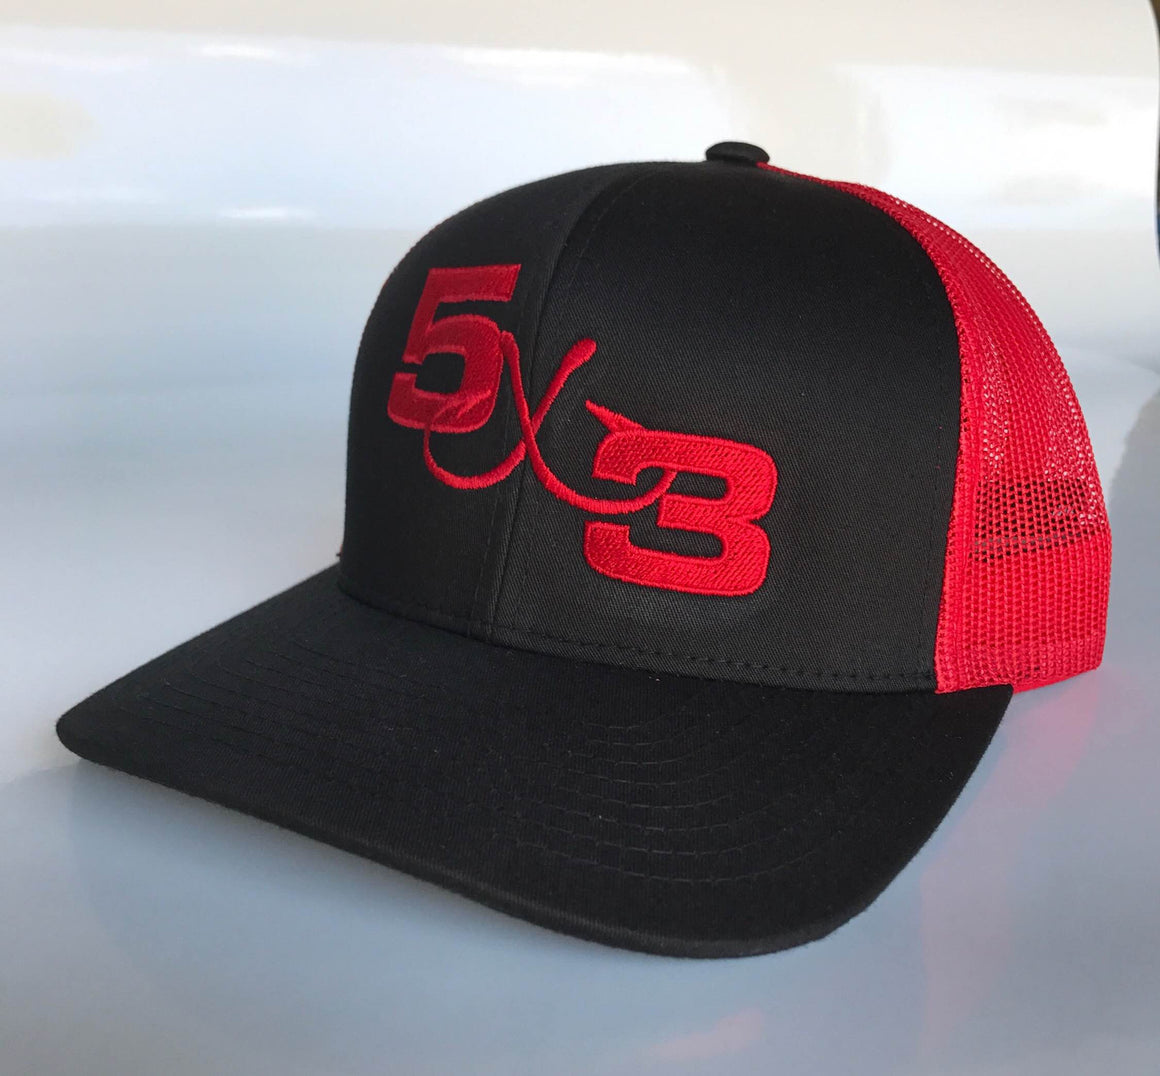 Black with Red Mesh 5X3 Snapback